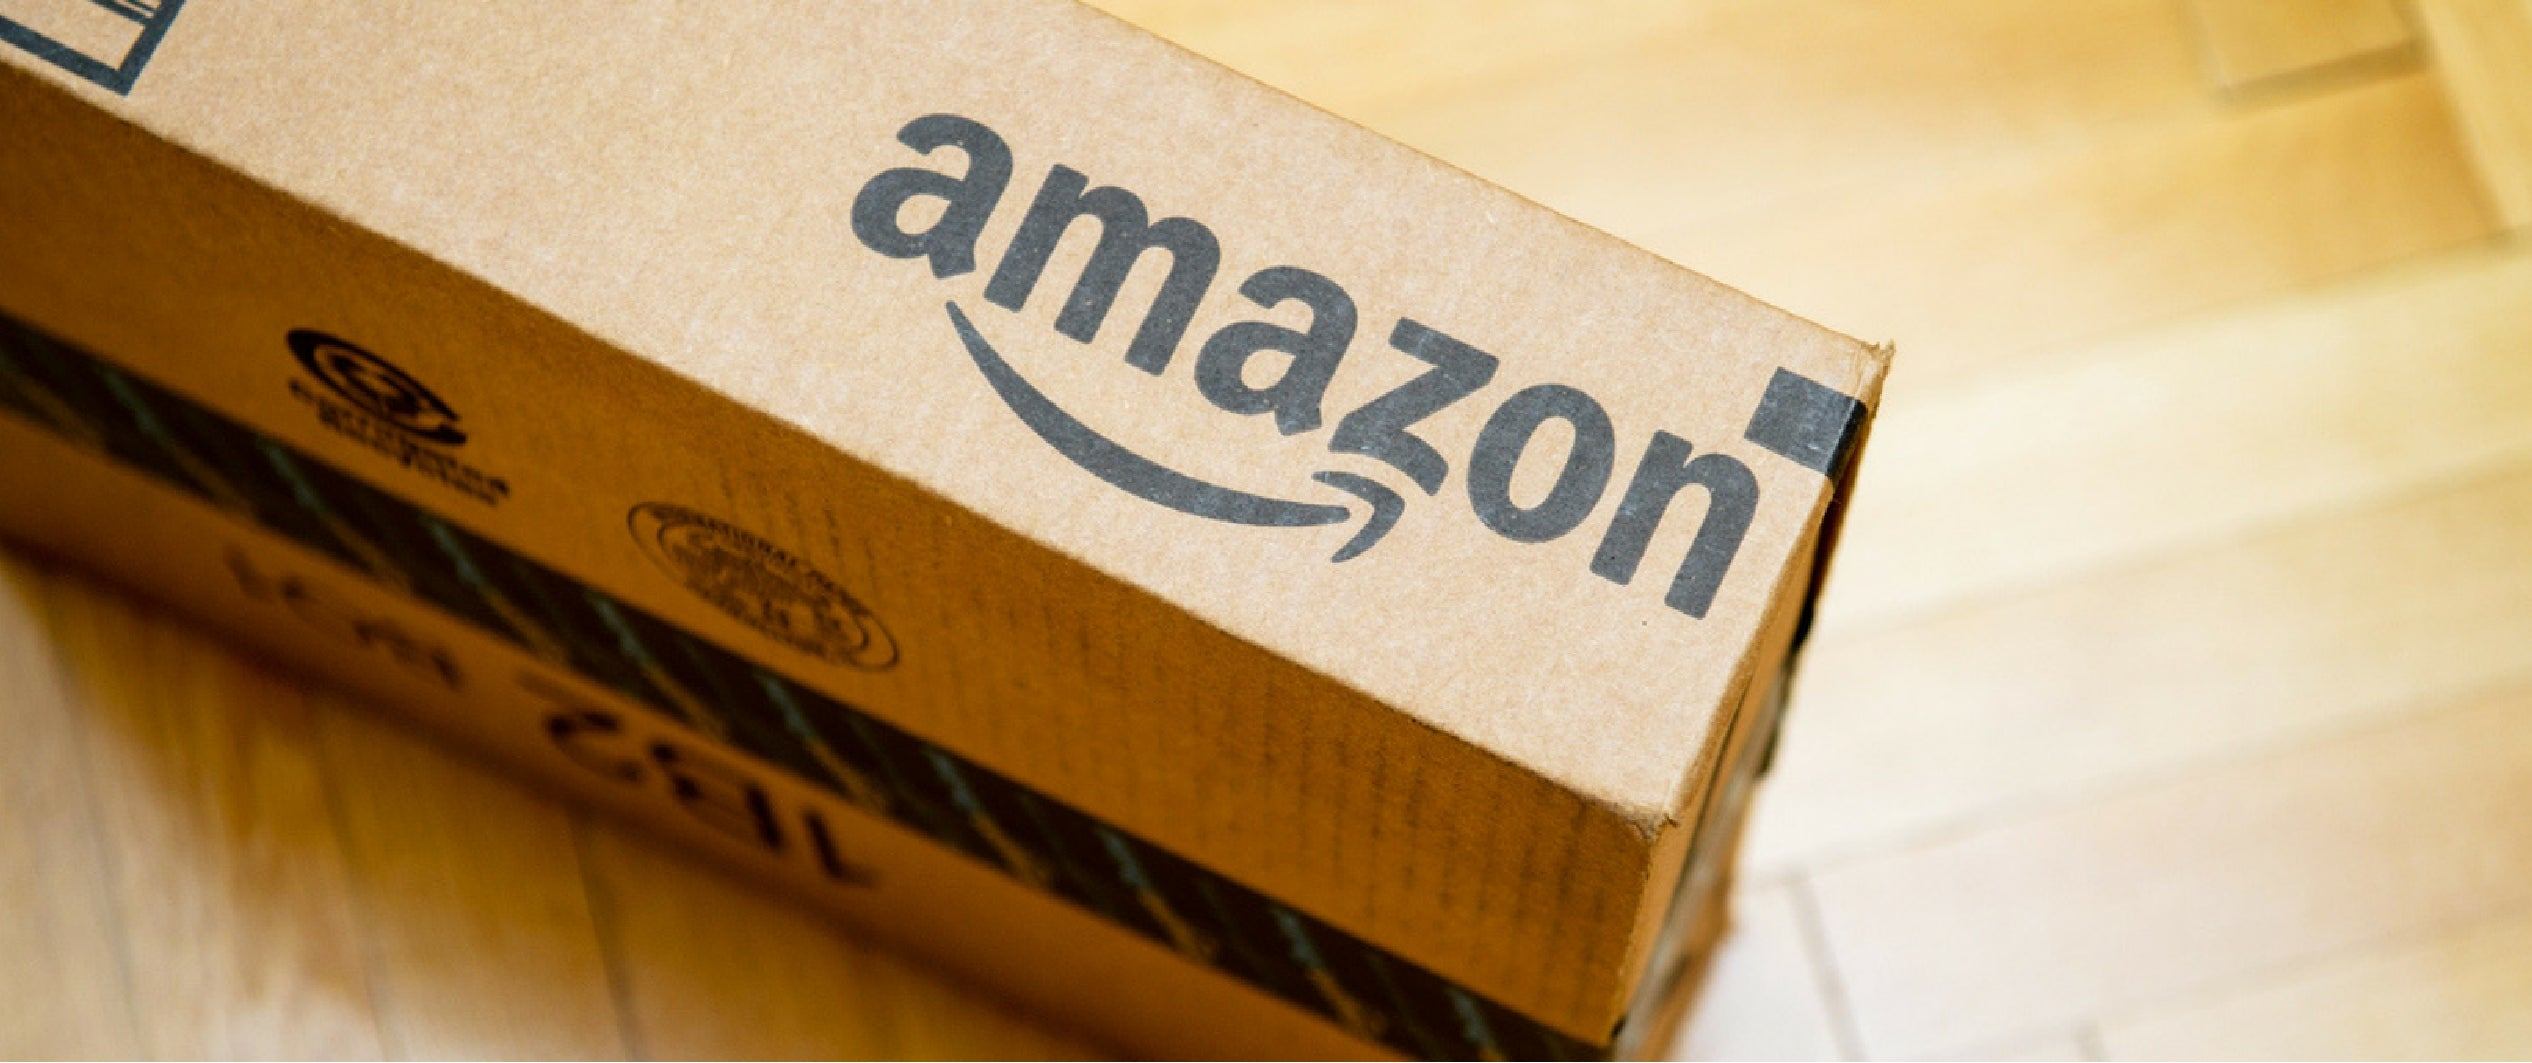 The Pros and Cons of Selling on Amazon and eBay